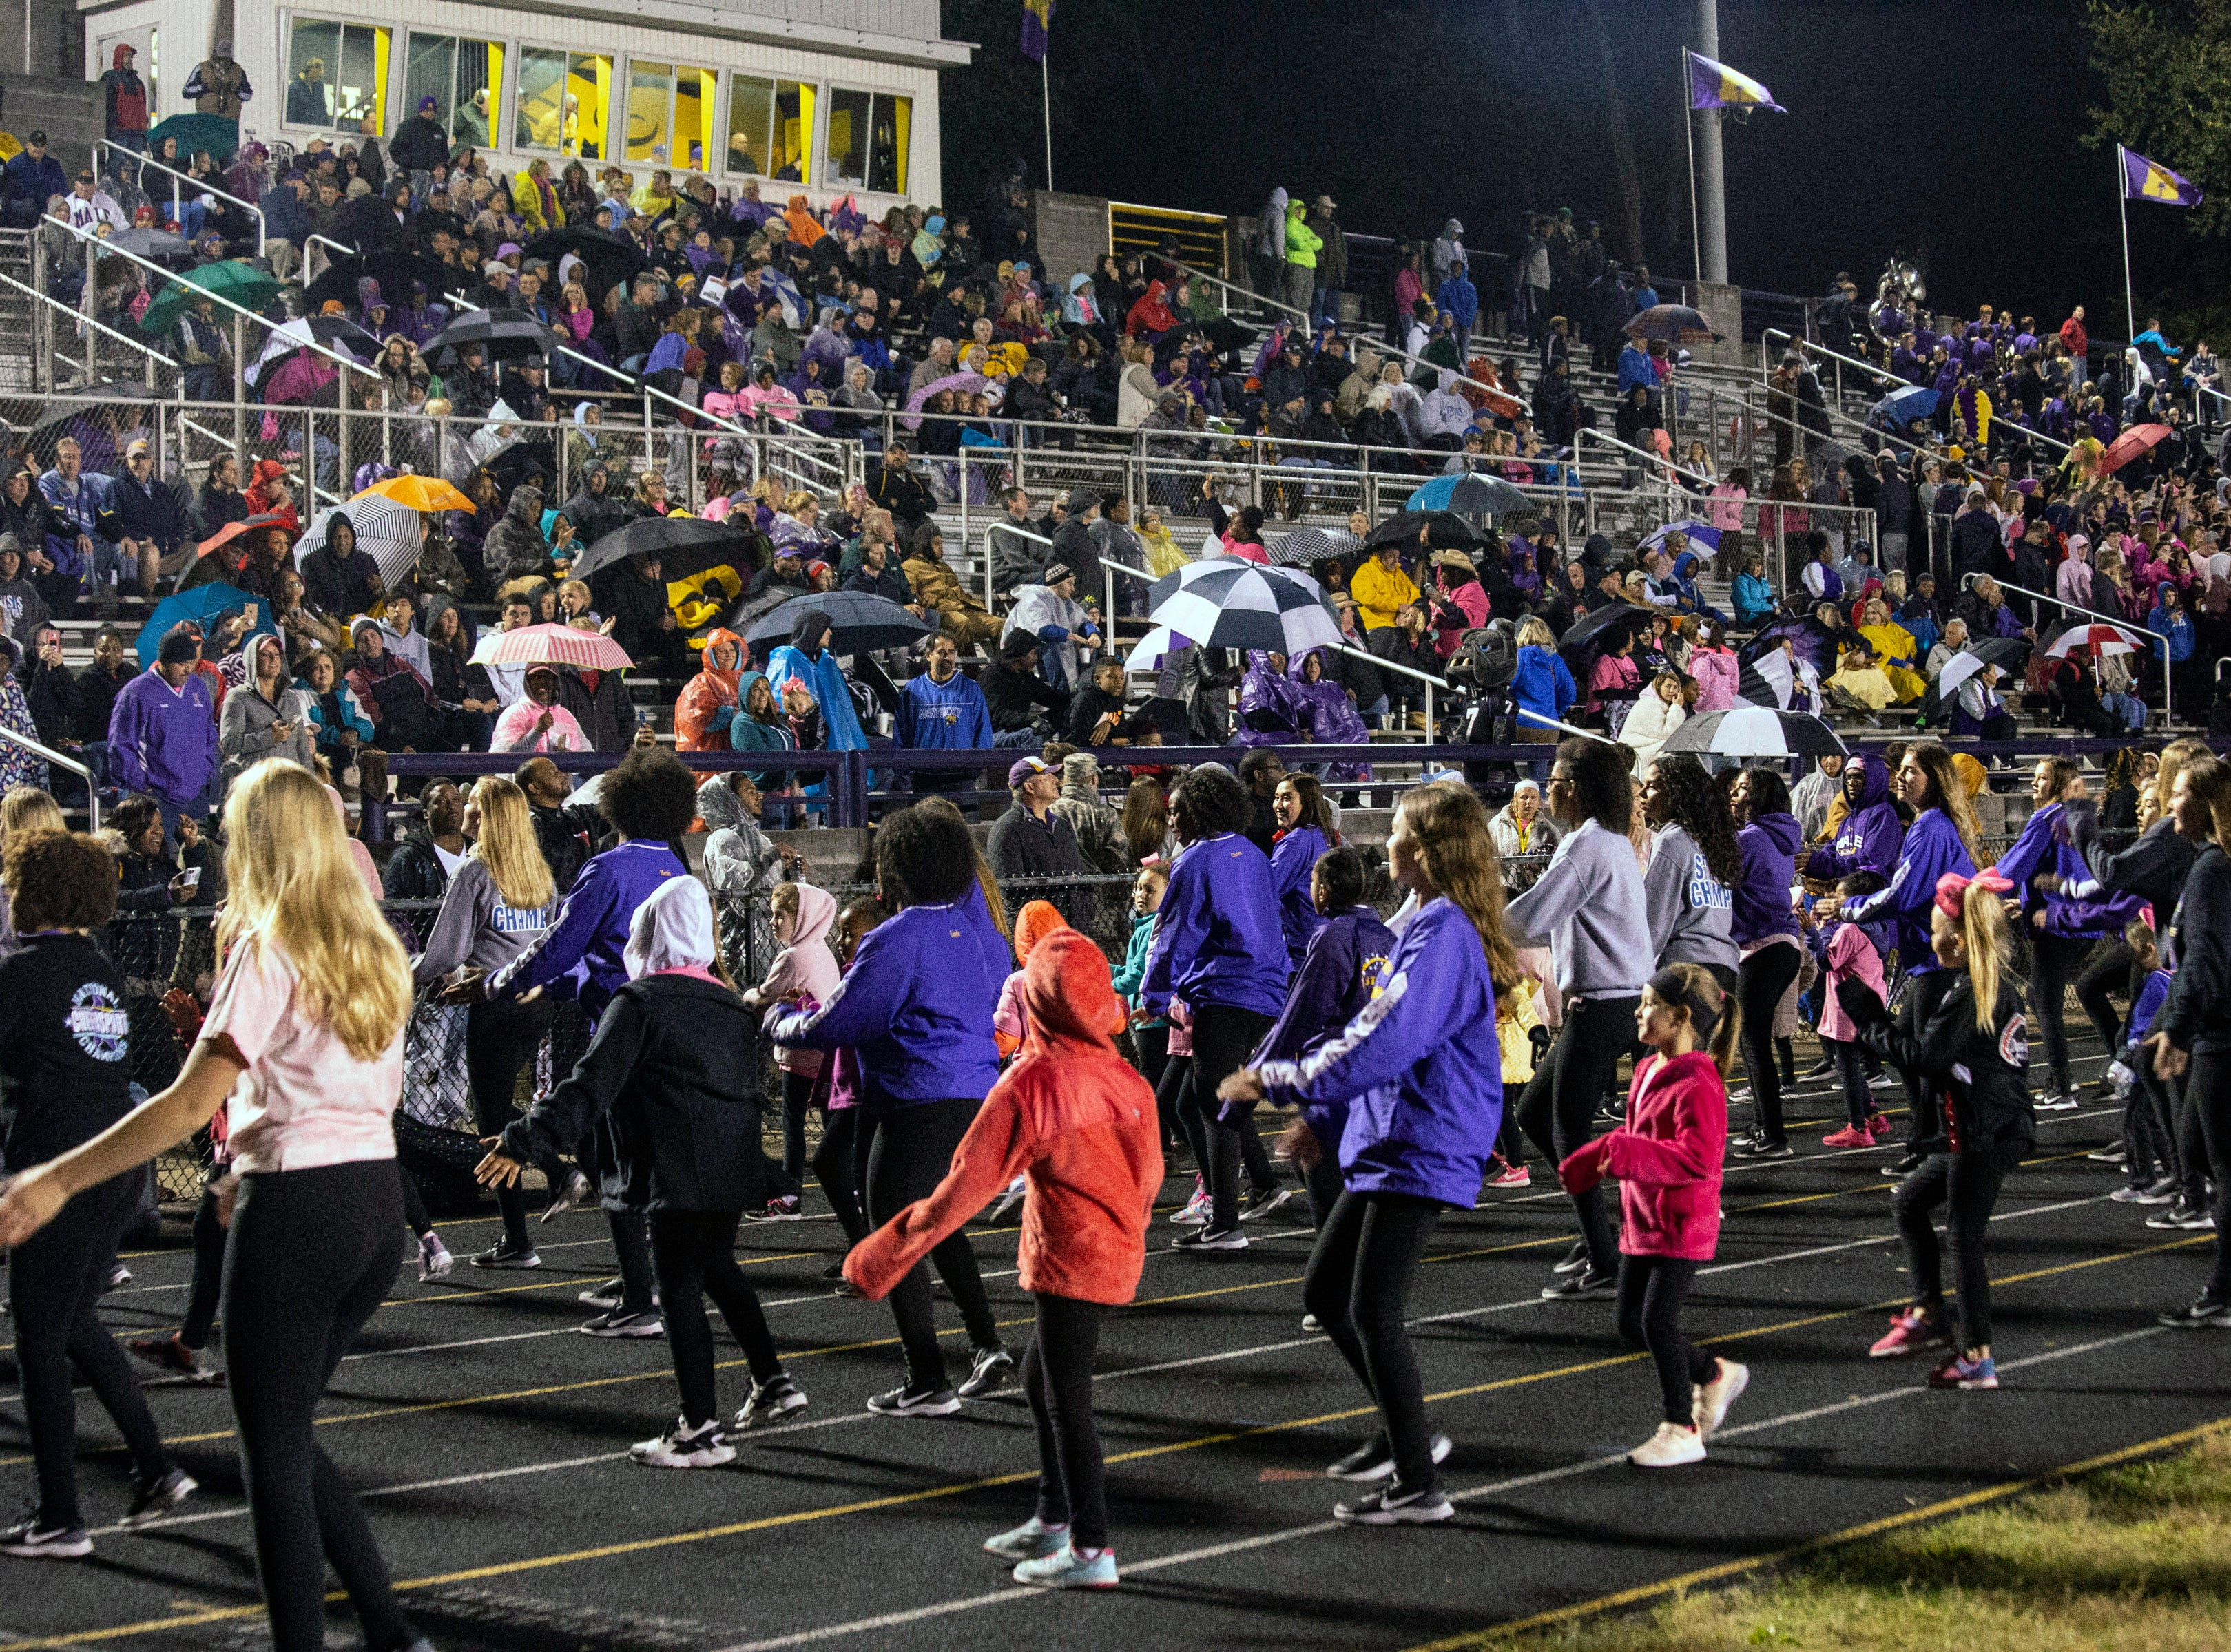 The Male dance team had several special guests join them as sideline entertainment against St. X on Friday night. Oct. 12, 2018